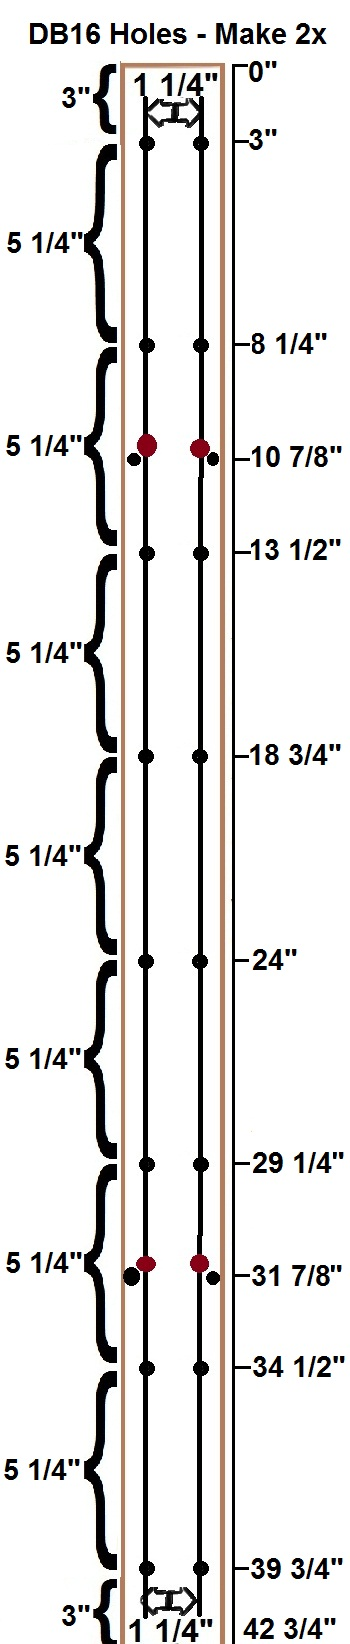 How to build a DB16 Antenna – MoneyRhythm – Permaculture ...  Bay Antenna Wiring Diagram on antenna grounding diagram, wifi antenna diagram, antenna lightning arrestor, antenna wire, tv antenna diagram, antenna installation, antenna coil diagram, antenna circuit diagram, antenna accessories, antenna block diagram, antenna radio, antenna connector, wire harness diagram, antenna cable, antenna operation, reception diagram, antenna types, antenna parts, antenna transformer,